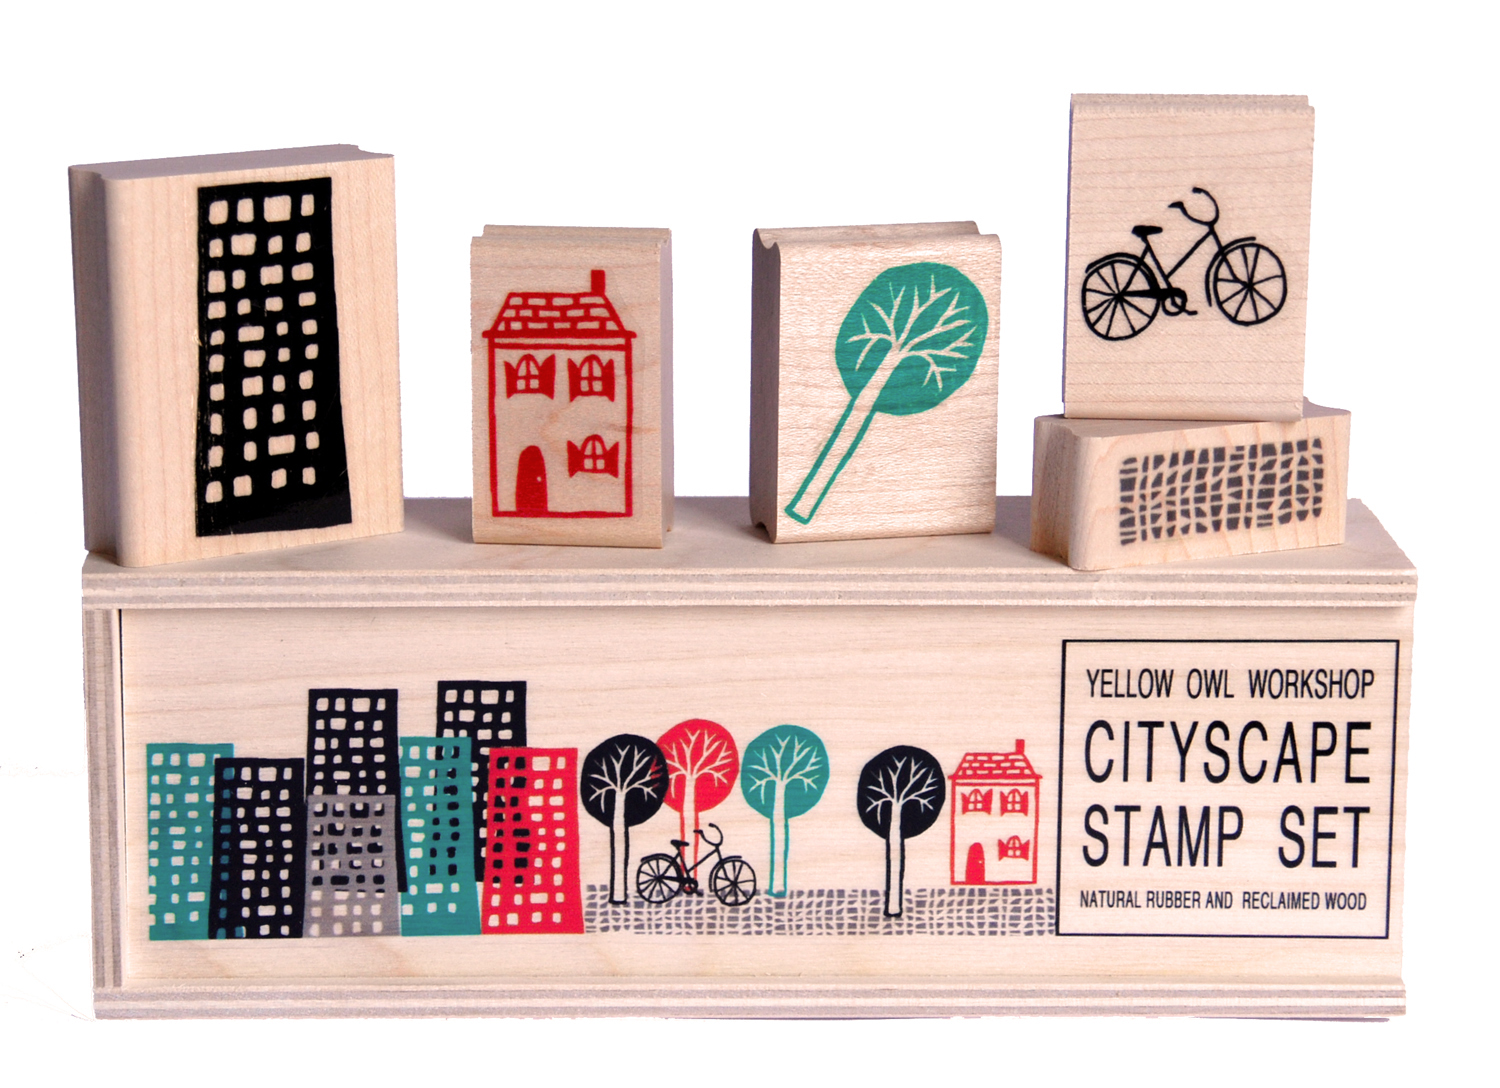 Yellow Owl Workshop Cityscape Stamps